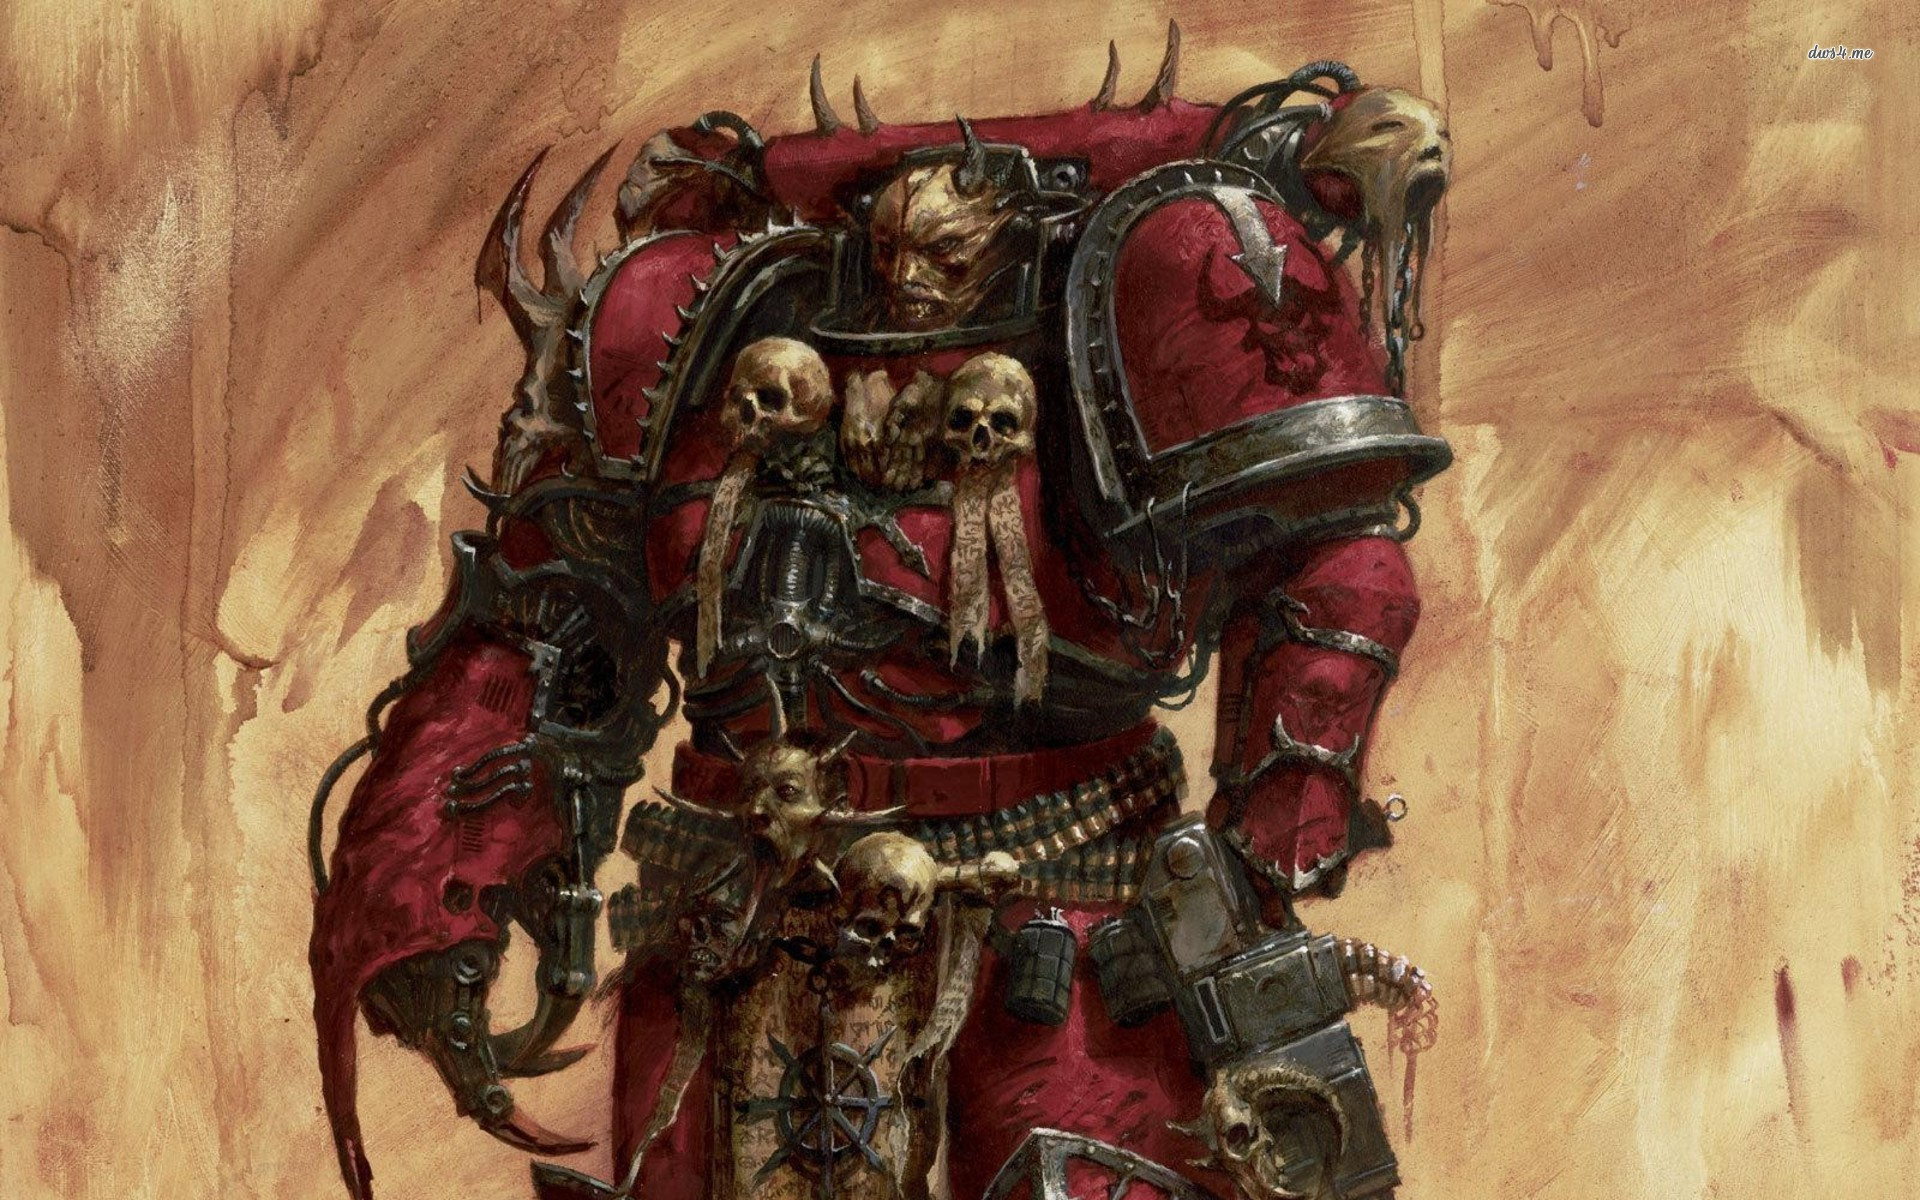 Warhammer 40k Wallpaper 1920x1200 - WallpaperSafari